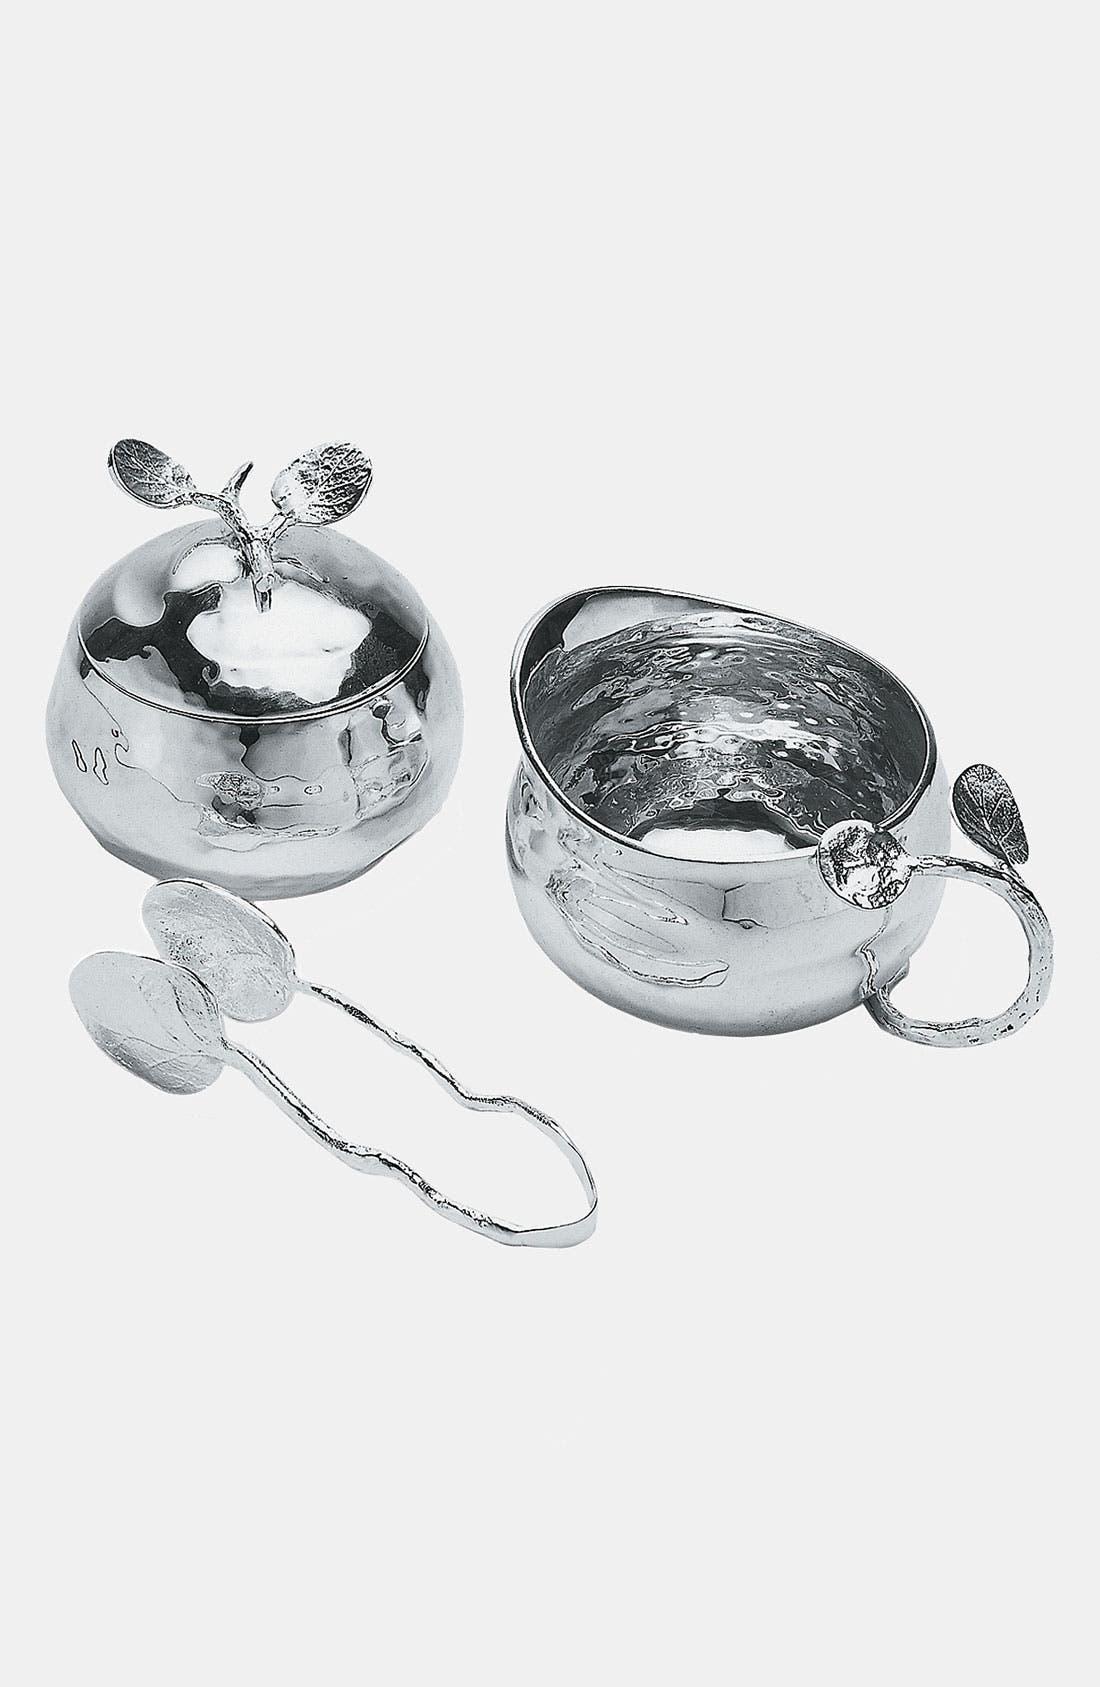 Alternate Image 1 Selected - Michael Aram 'Botanical Leaf' Sugar Bowl, Creamer & Tongs